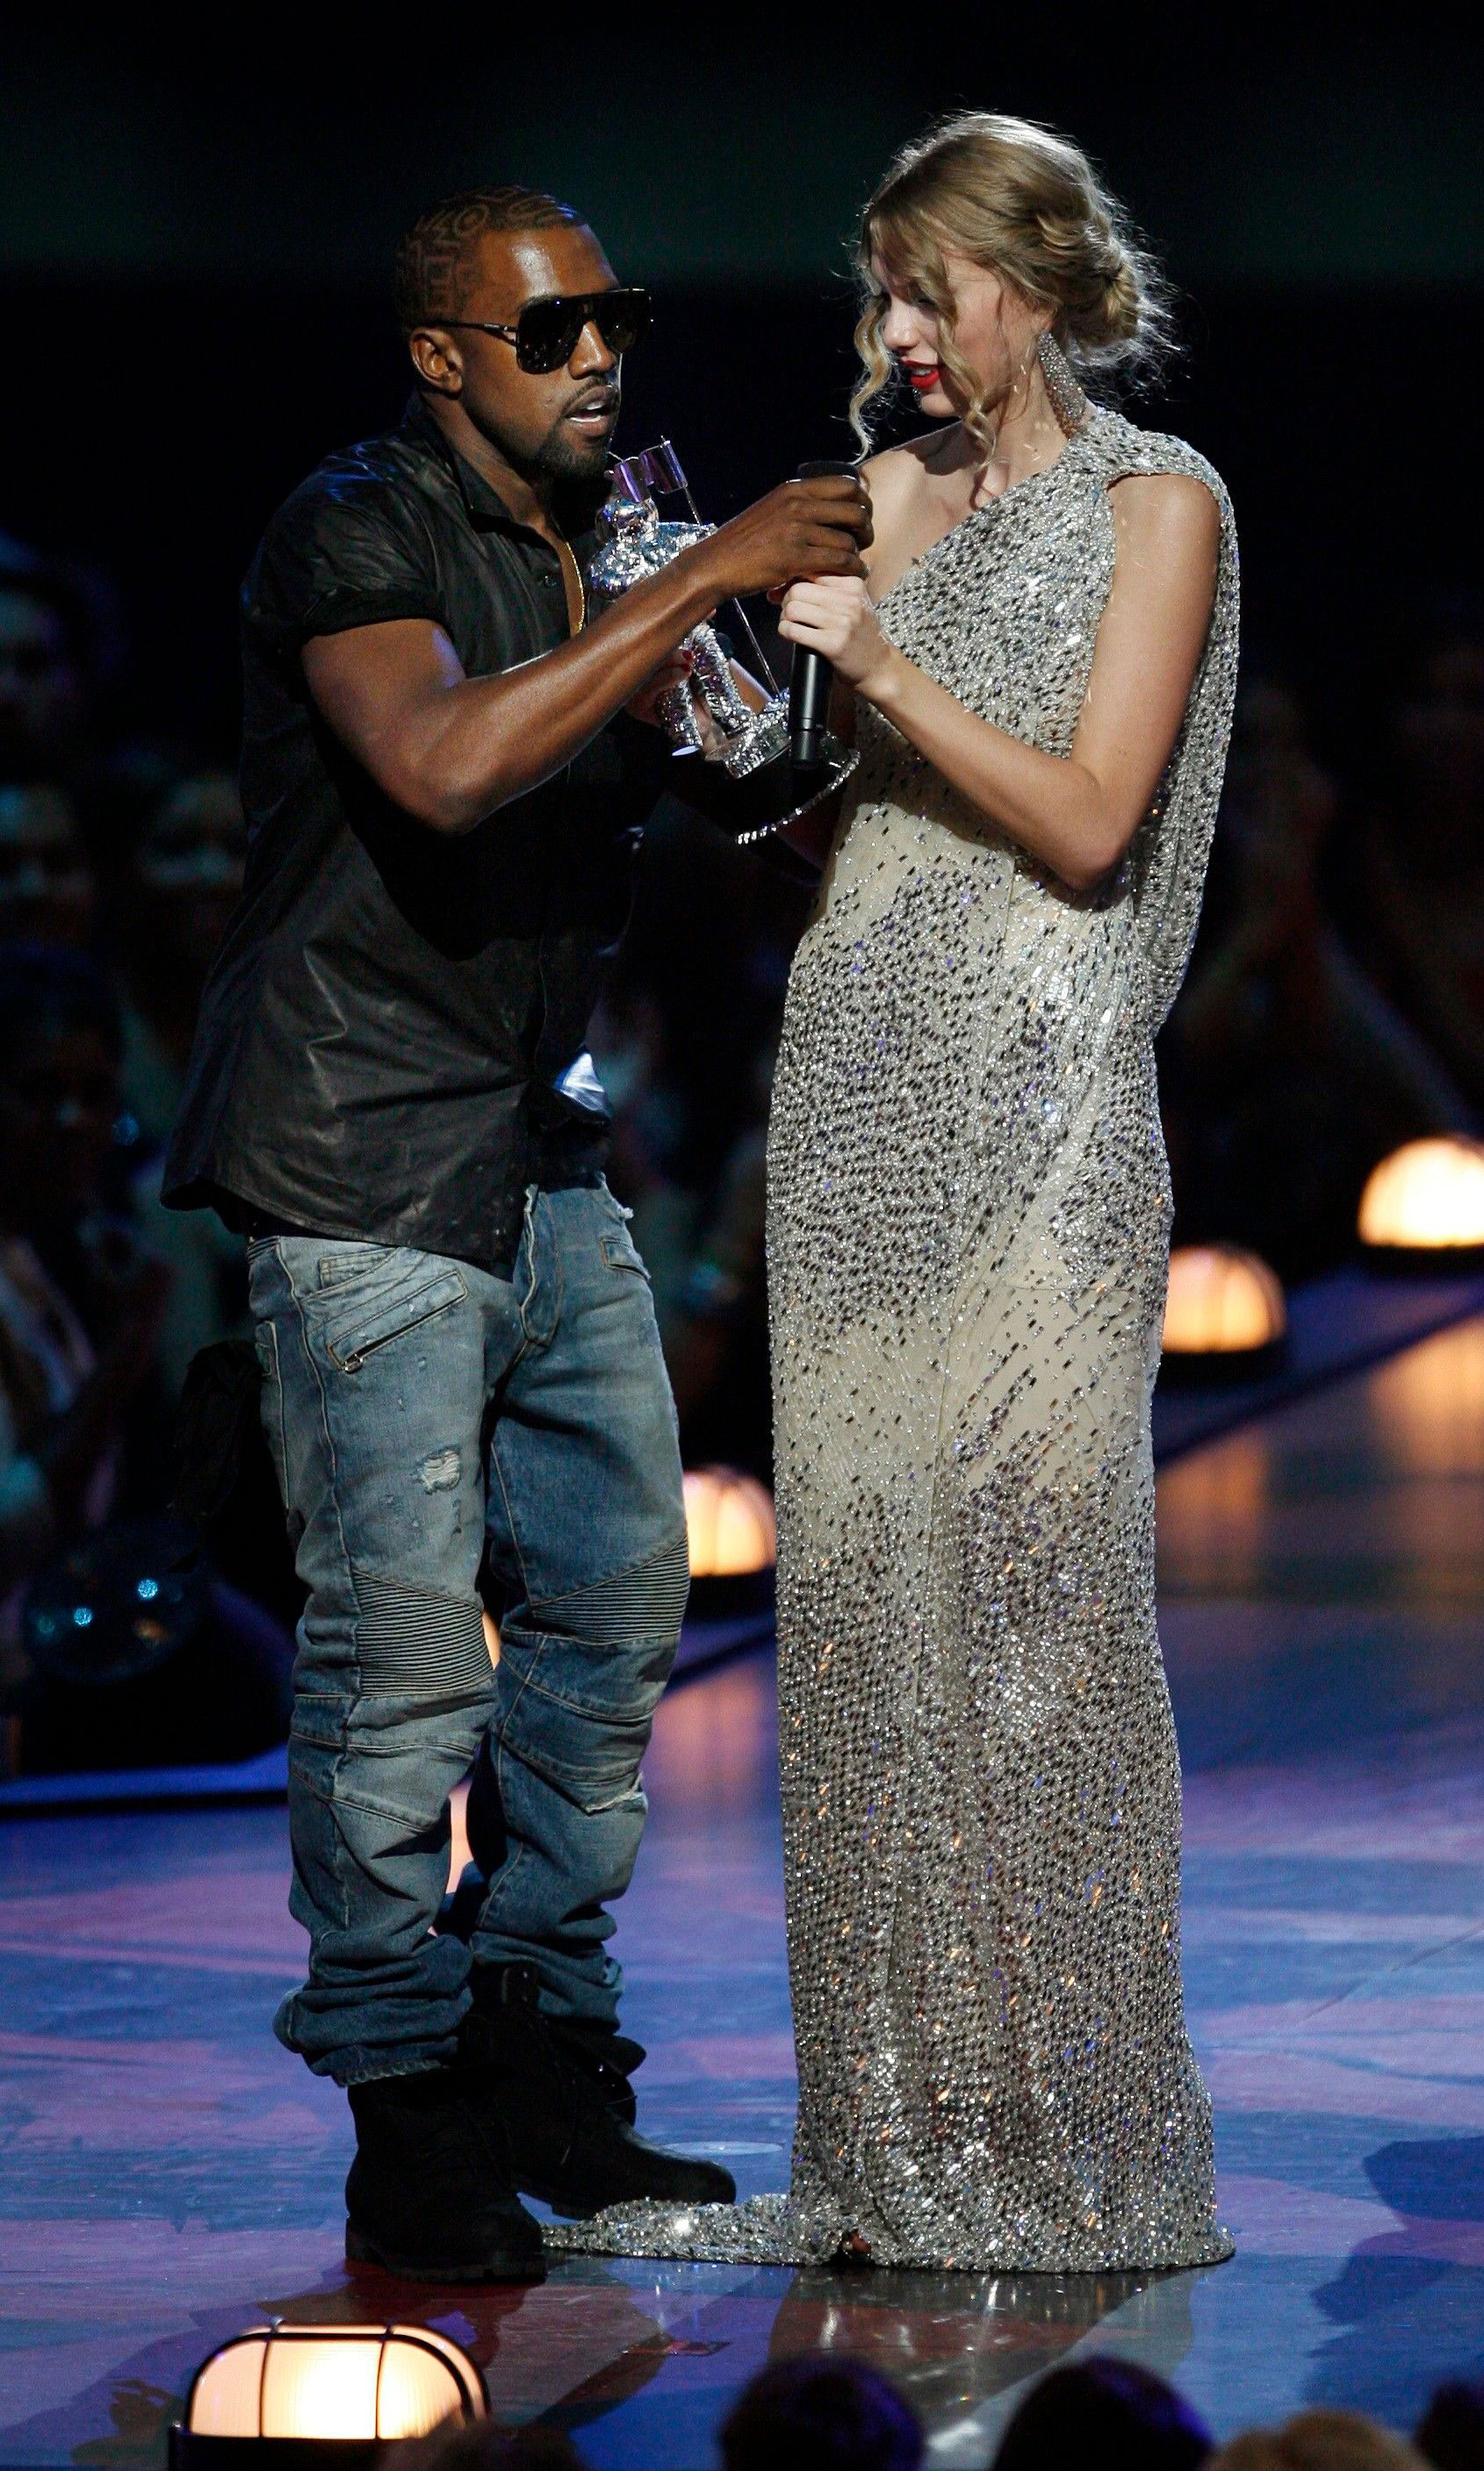 """Taylor Swift Wrote About Kanye Crashing VMAs Stage in 2009 Diary Entry - Kanye West takes the microphone from Taylor Swift as she accepts the """"Best Female Video"""" award during the MTV Video Music Awards on in New York City on September 13, 2009."""